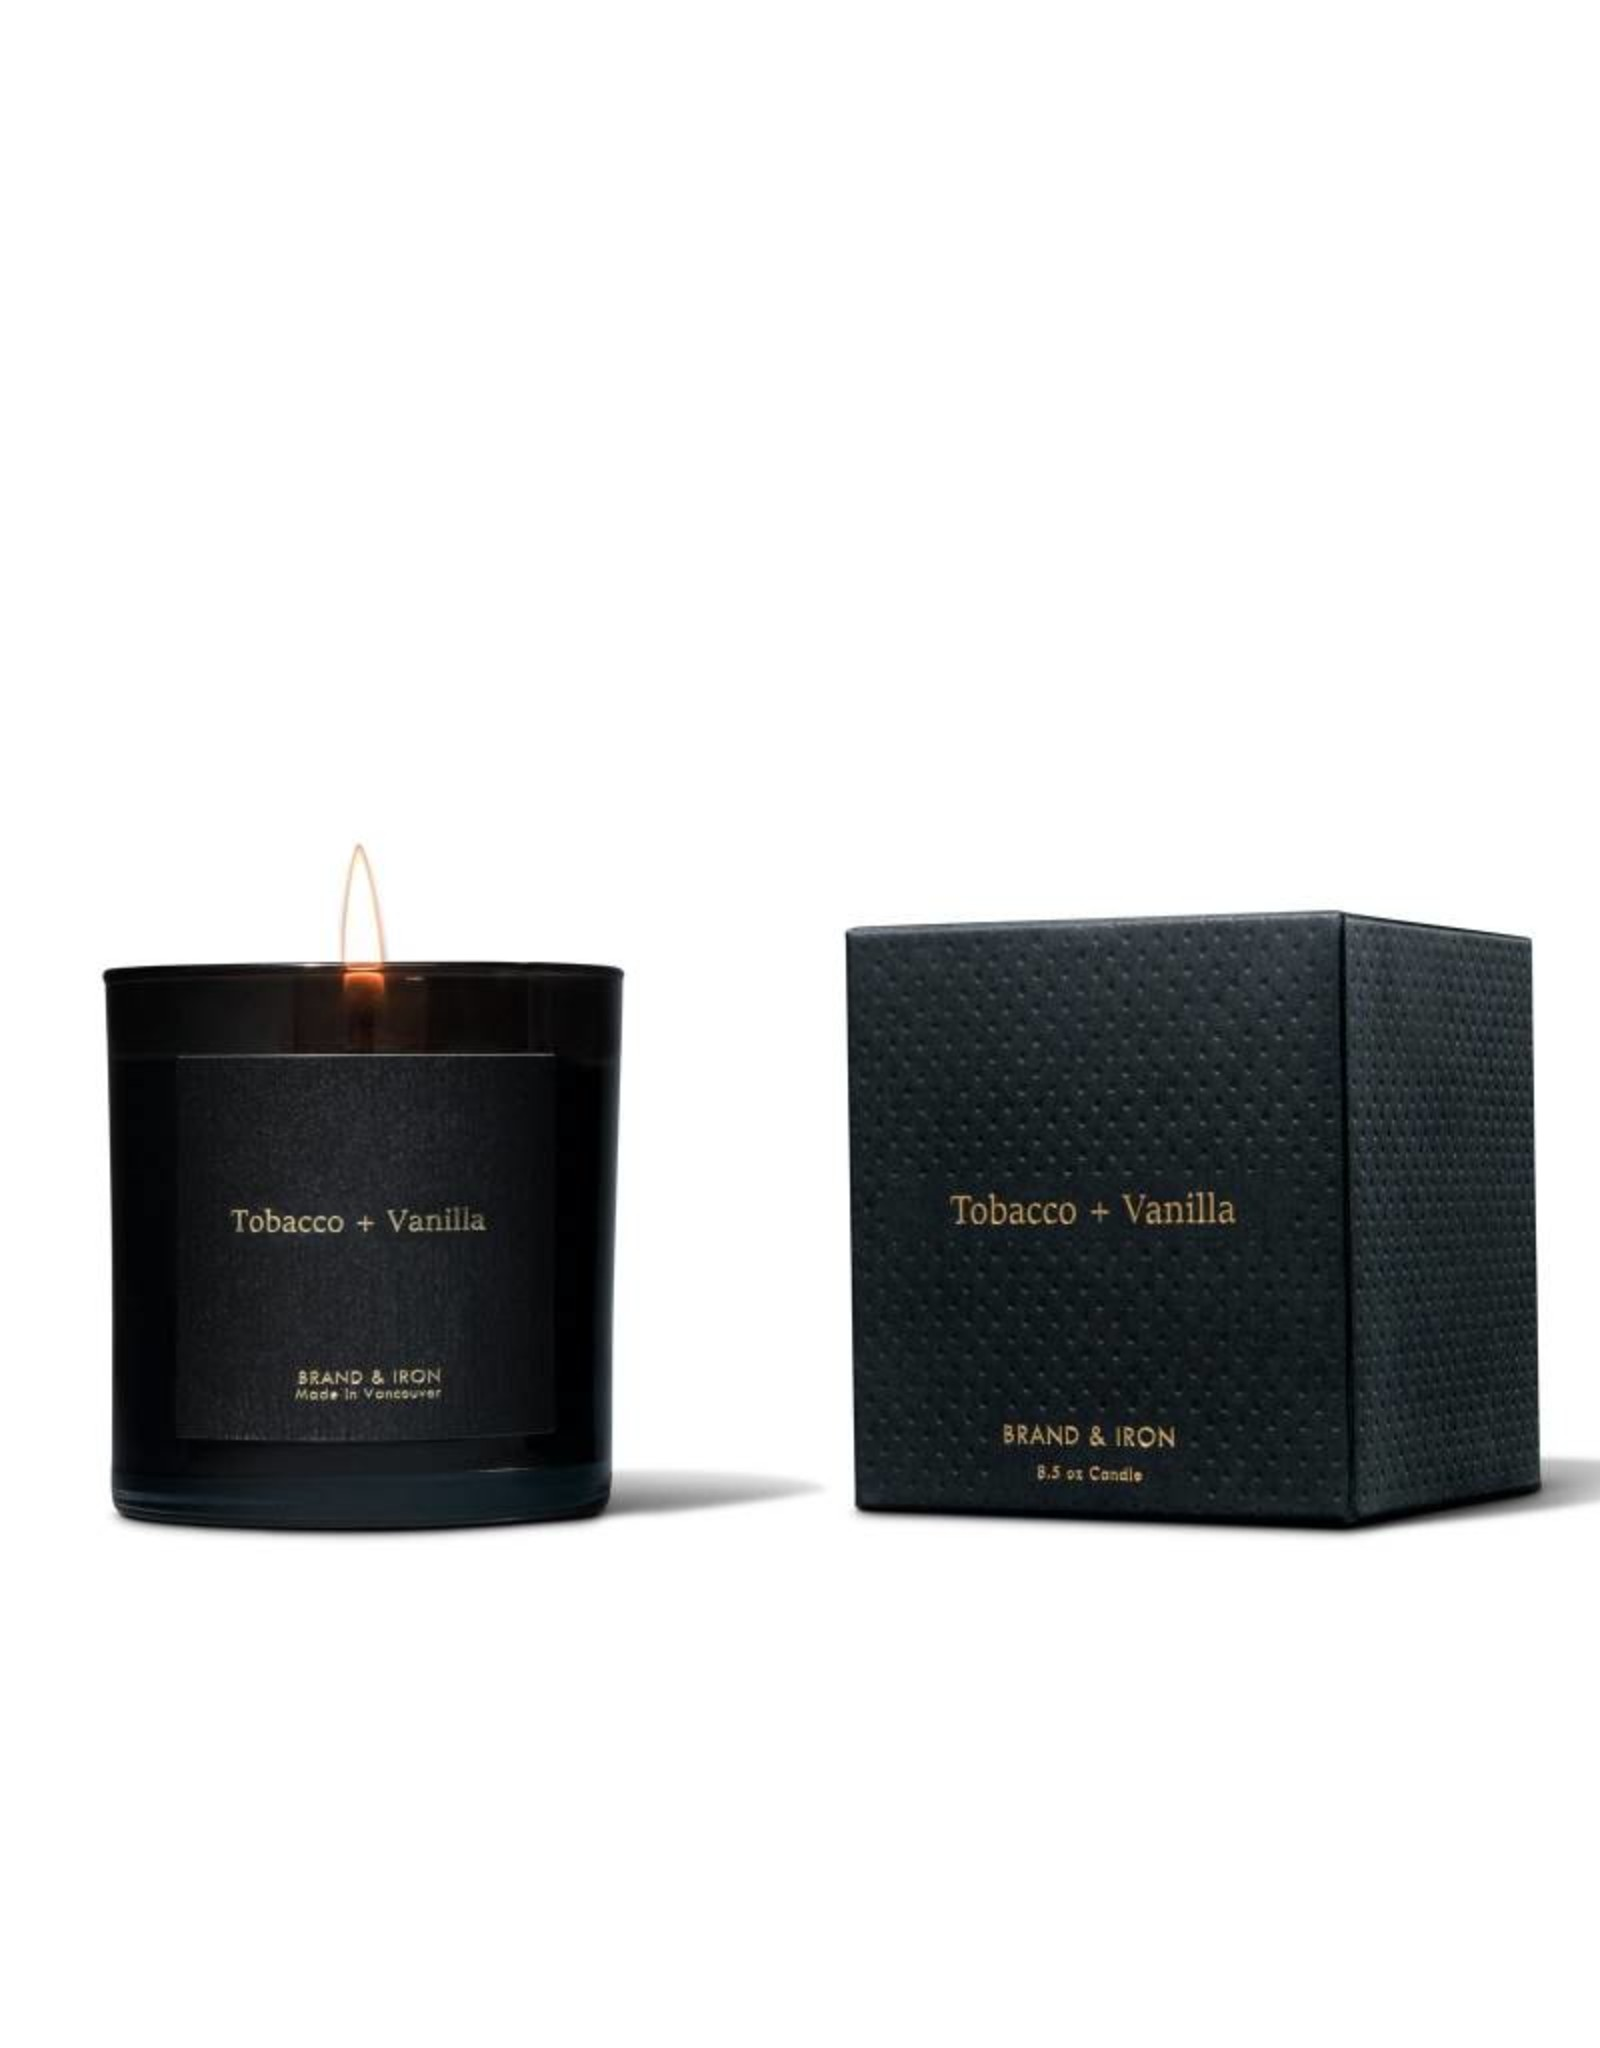 Brand & Iron Dark Spaces Tobacco and Vanilla Candle